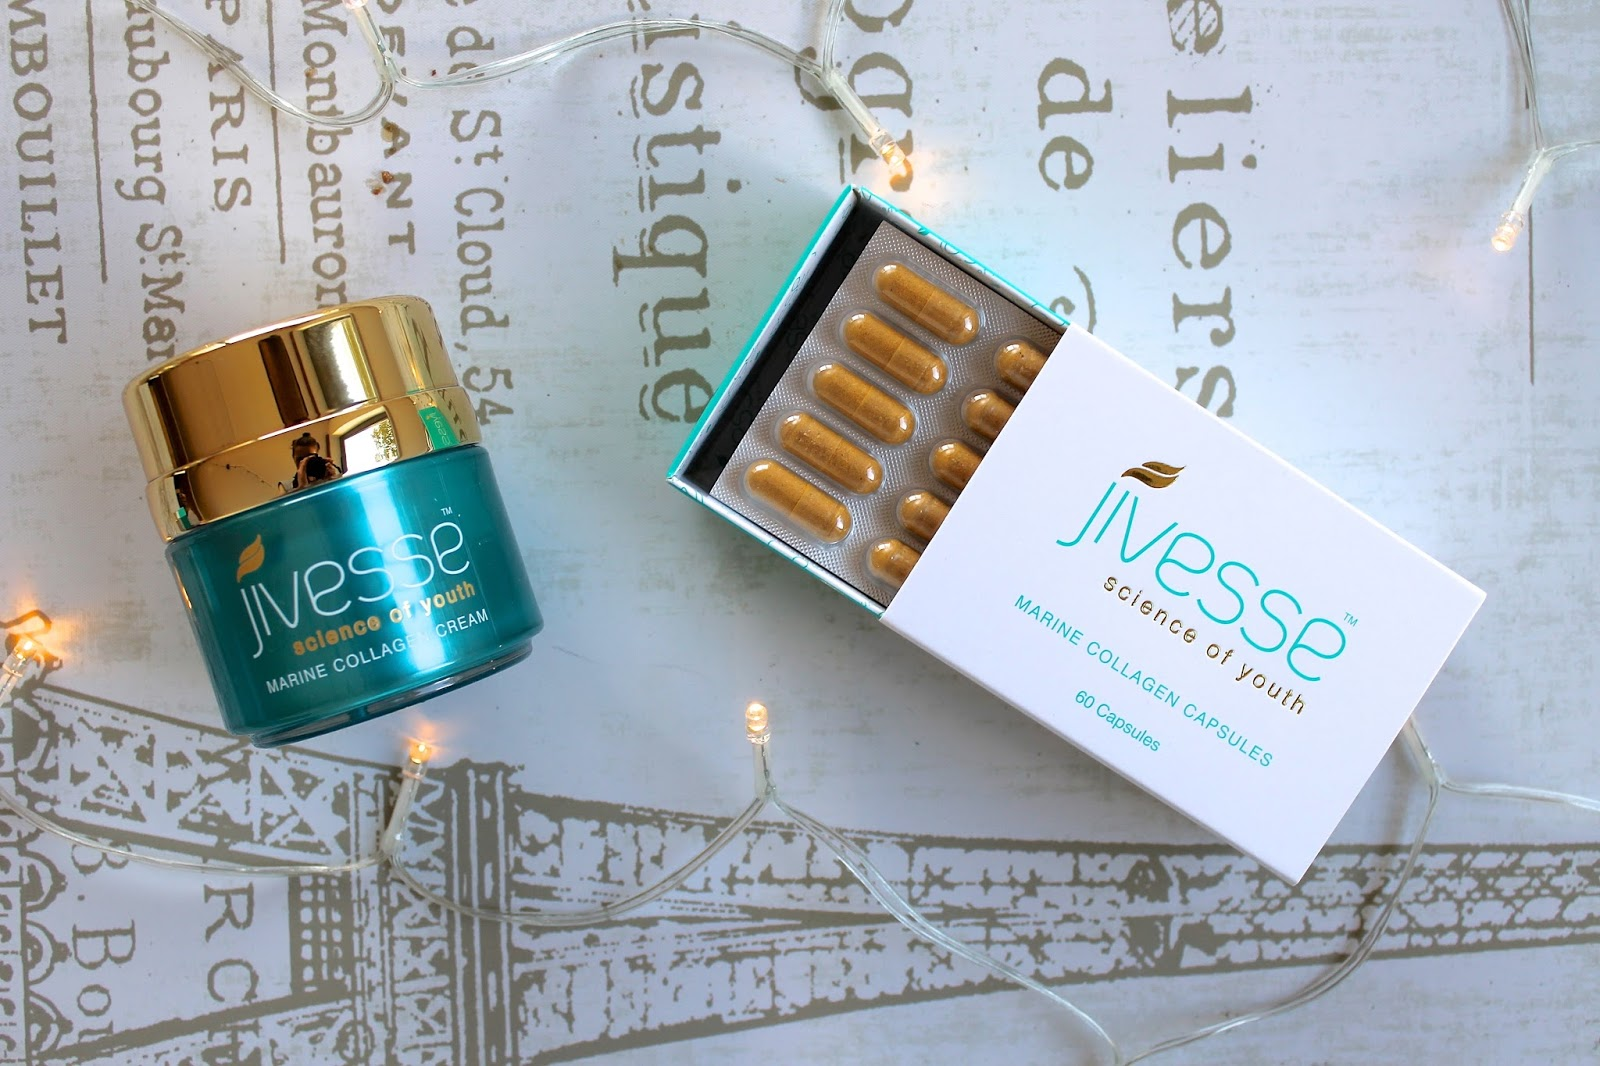 jivesse marine collagen skincare review